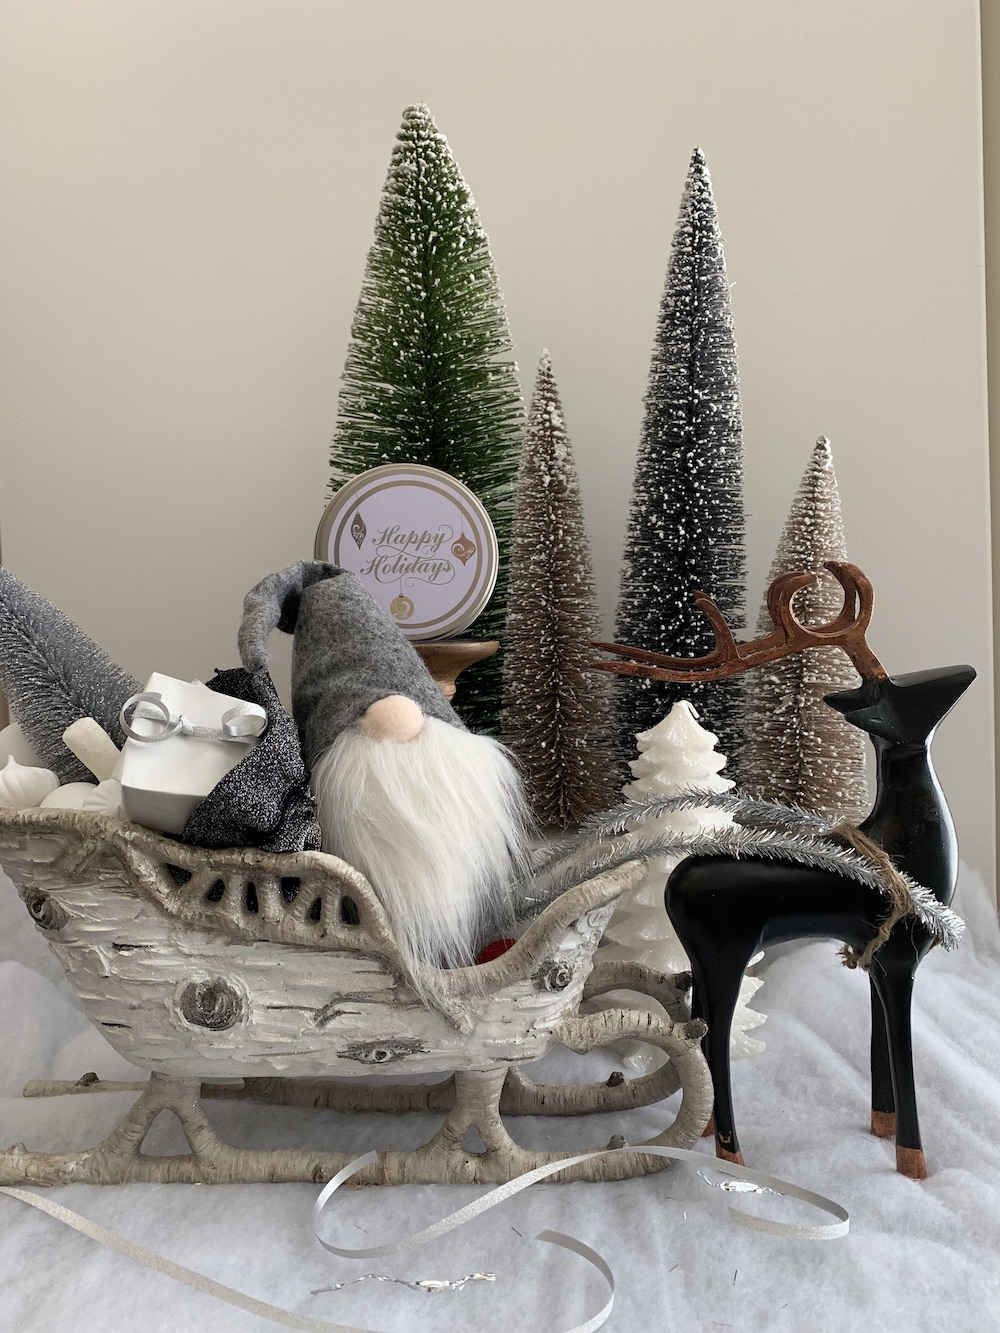 Christmas Home for the Holidays Tomte At Night #Winter #Affordable #BudgetFriendly #Christmas #DIY #ChristmasDecor #Decor